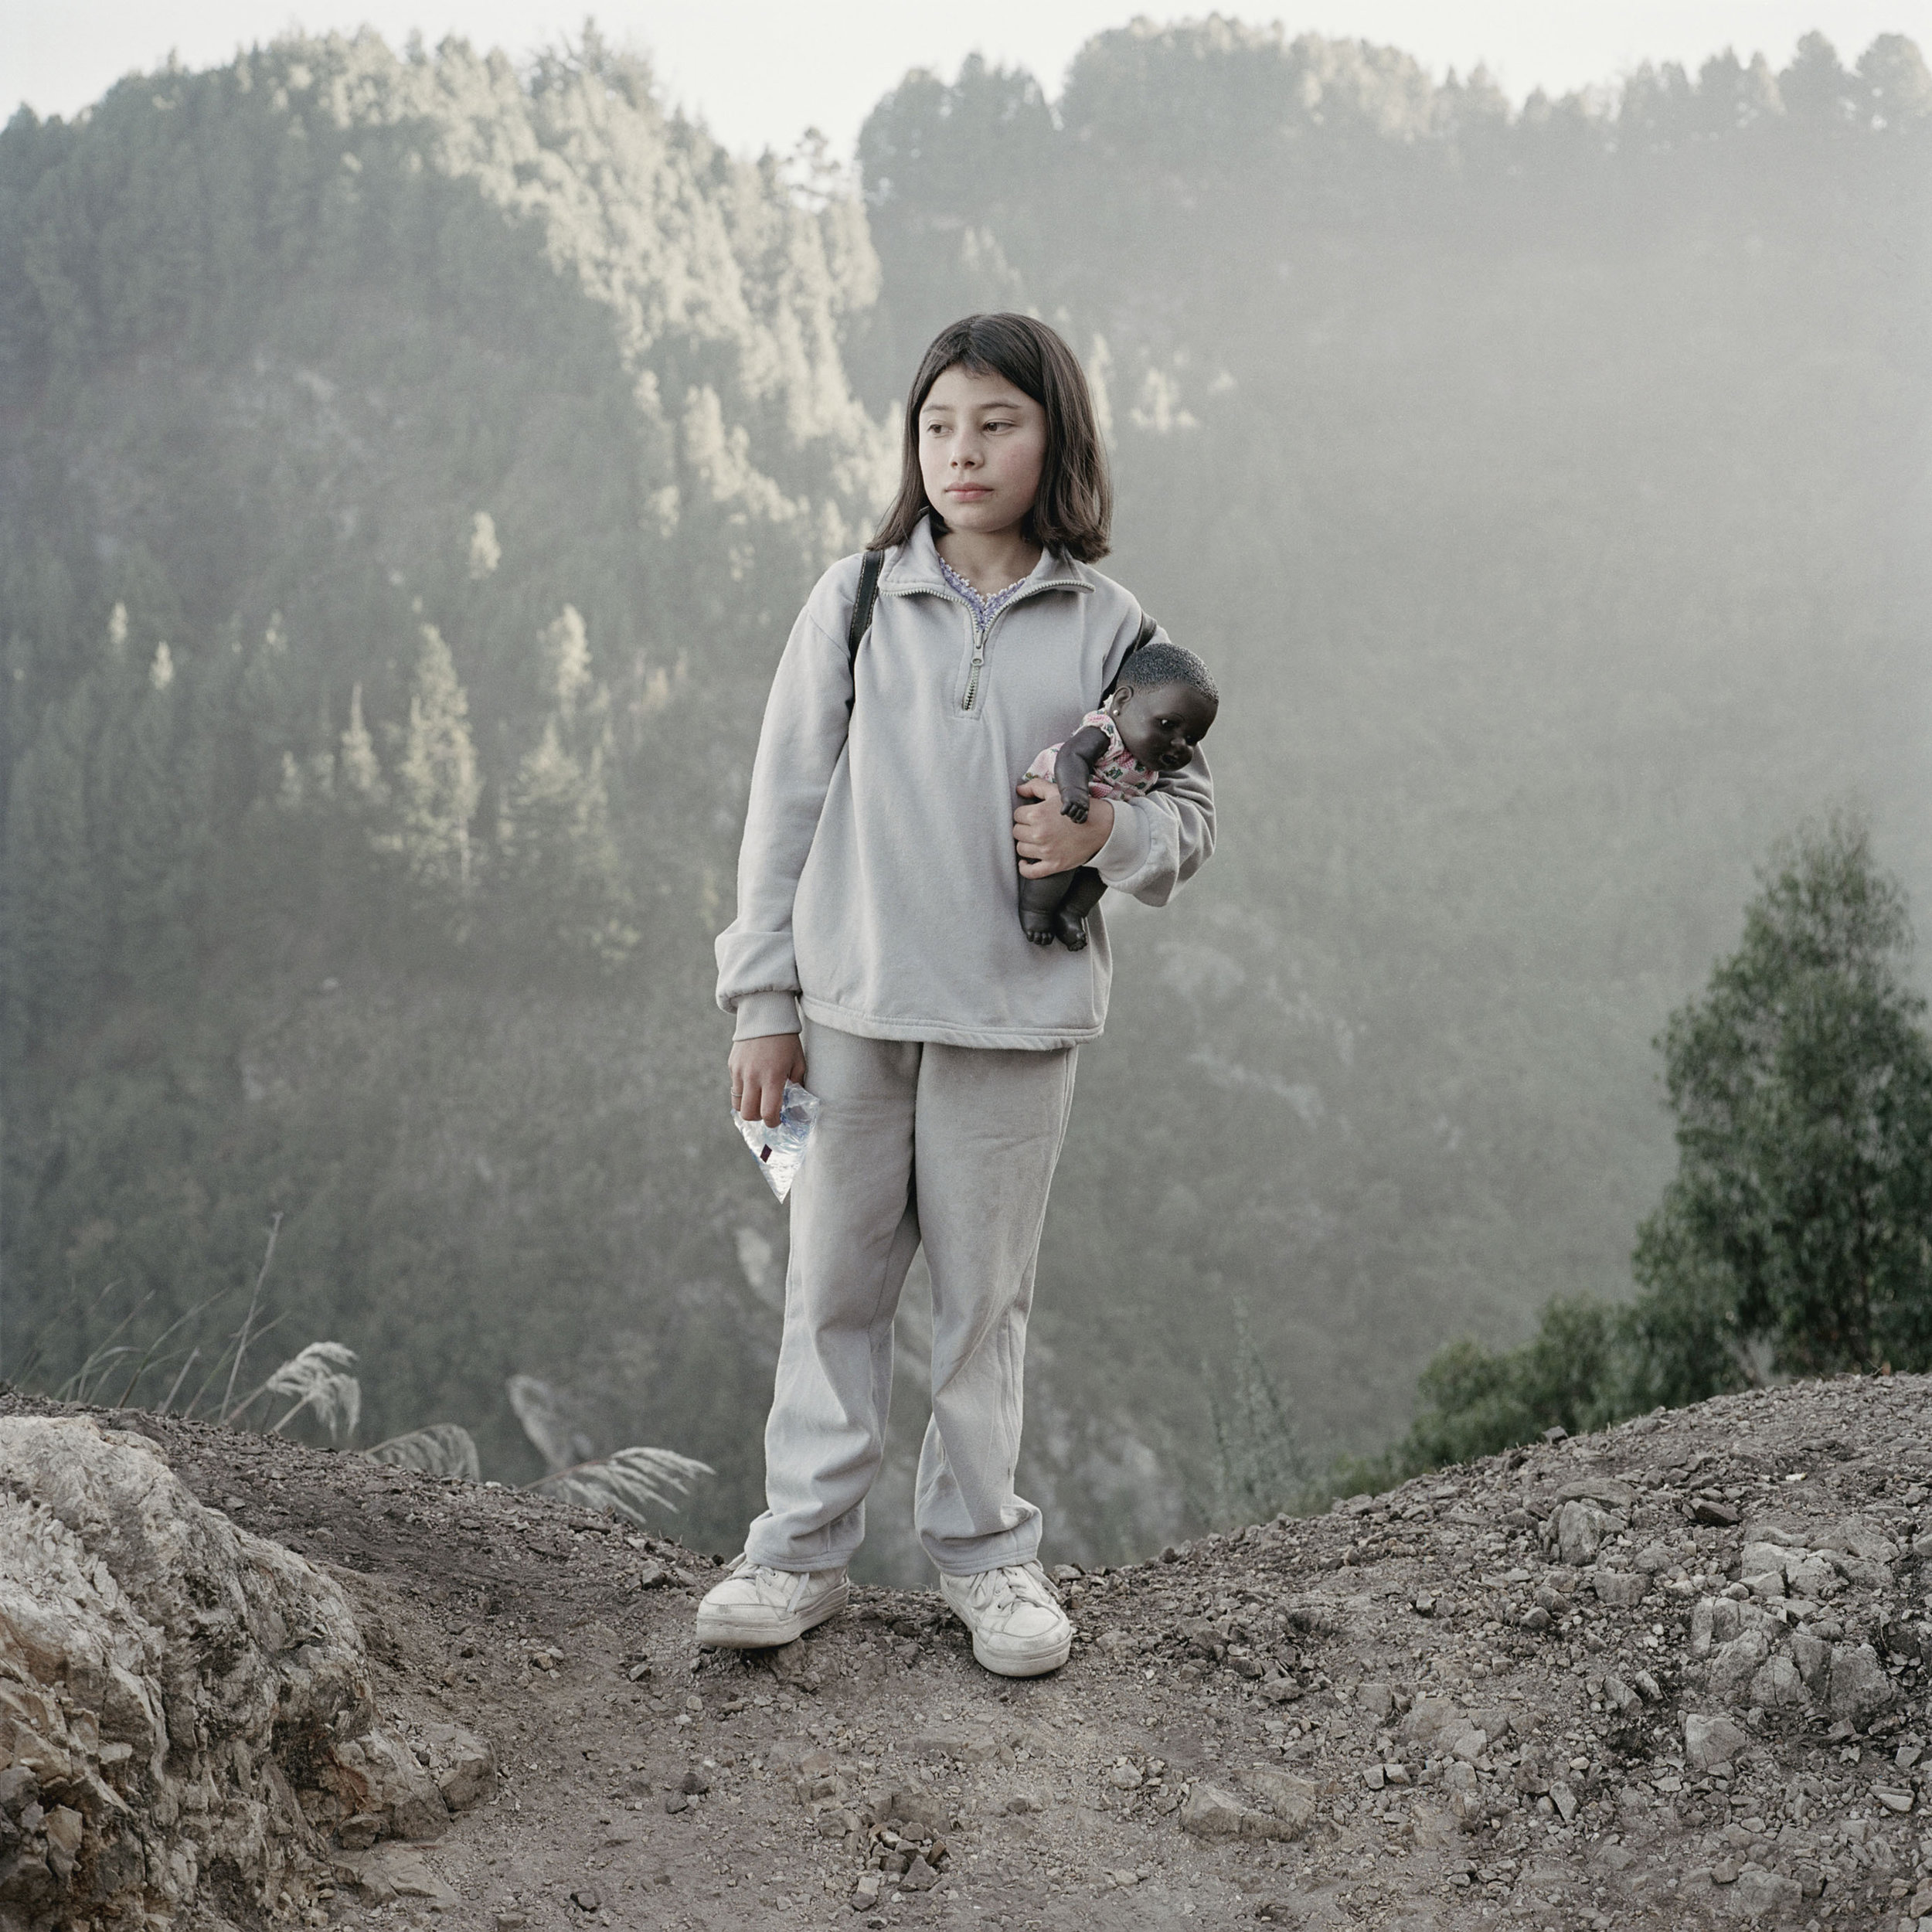 Photo from   Dog Days Bogotá  , a photobook where Alec and his wife traveled to Bogotá, Colombia to adopt a baby girl.